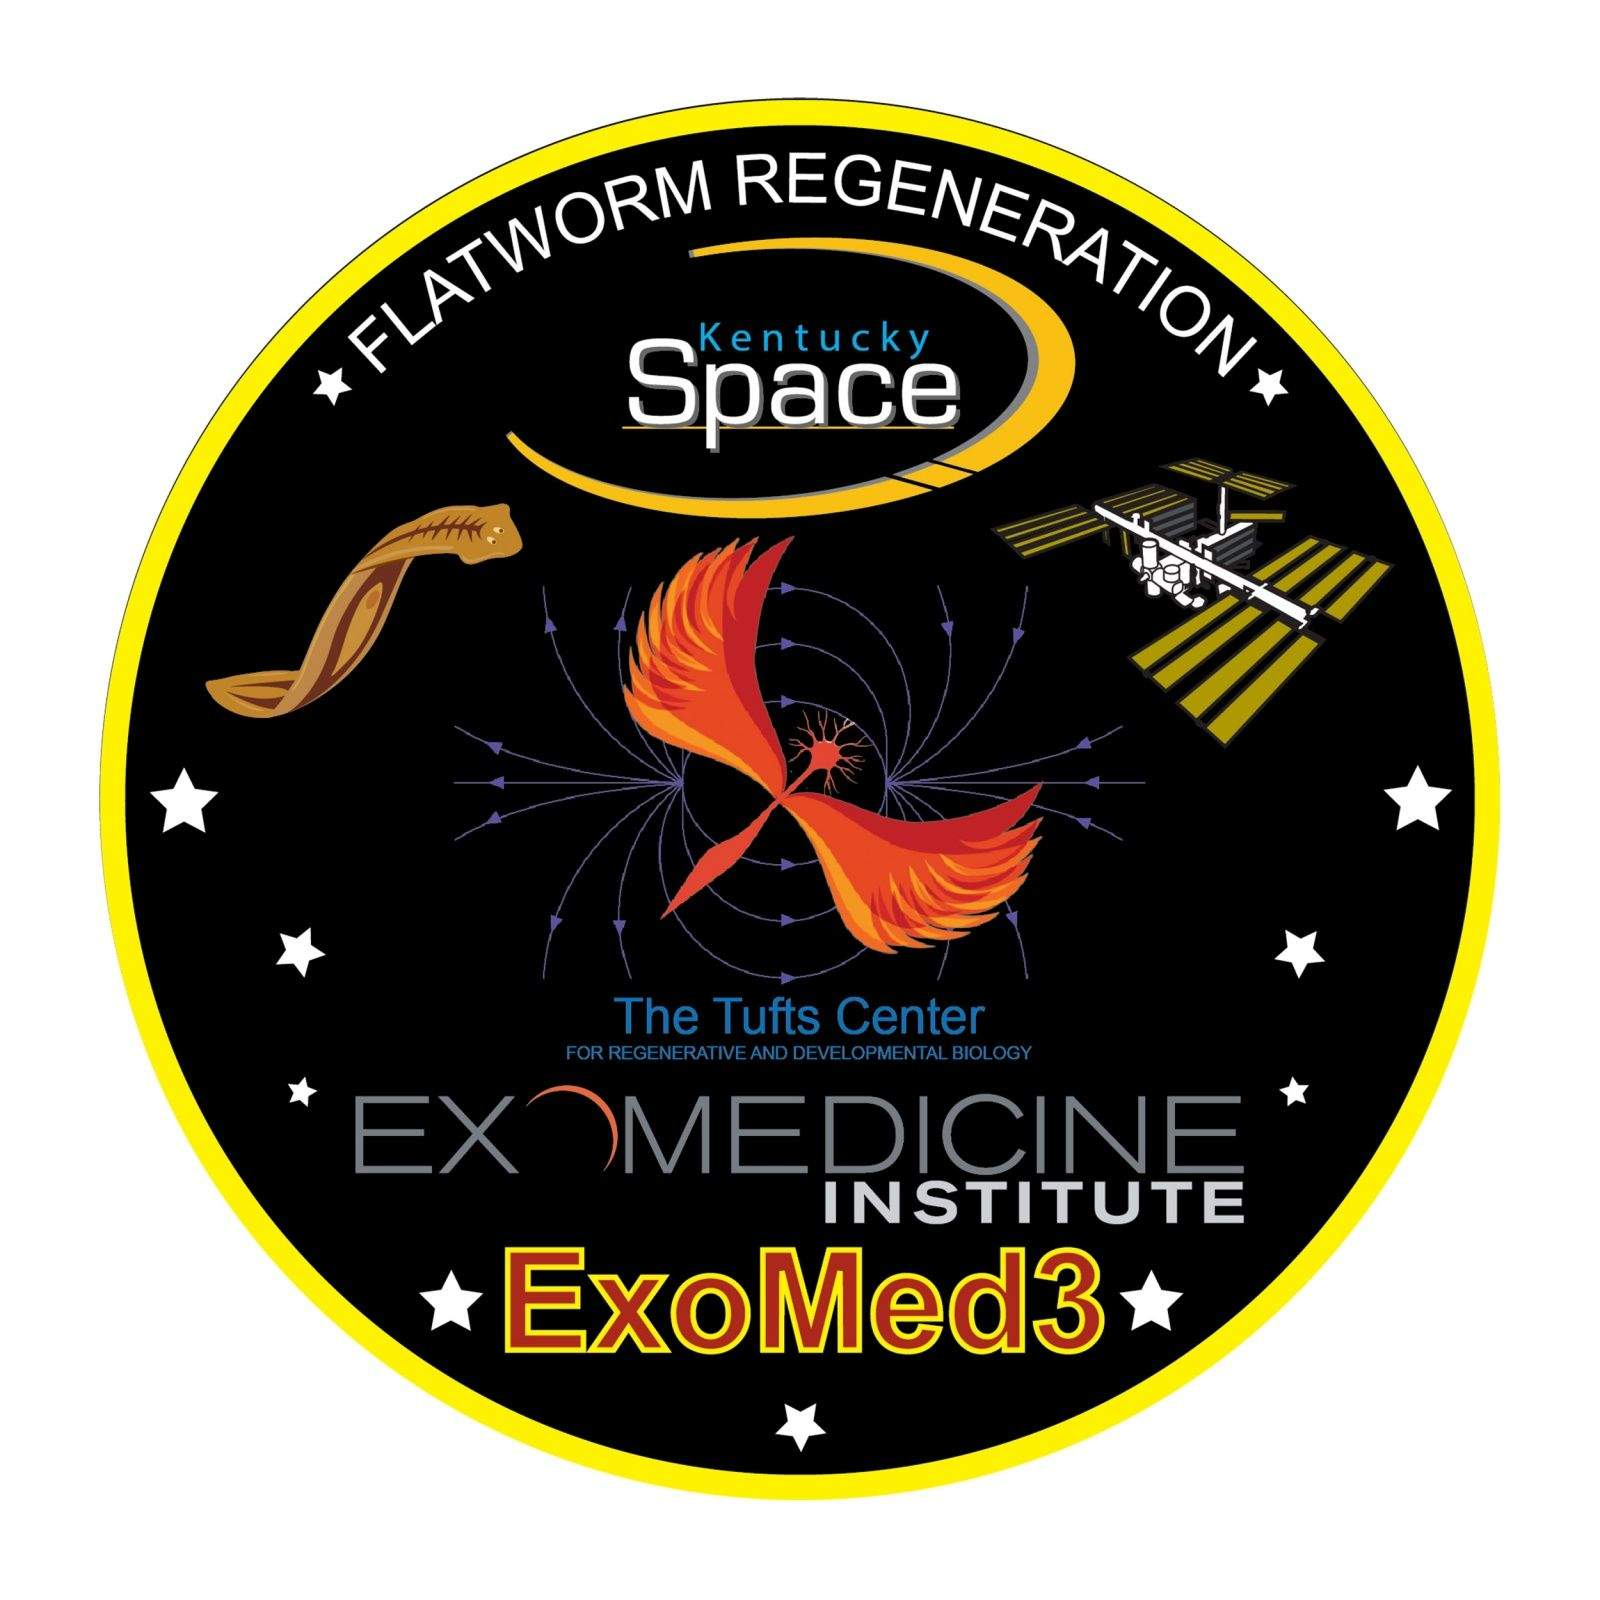 Flatworms are headed to the International Space Station and their sacrifice in the name of research gets a salute on the Kentucky Space mission patch.